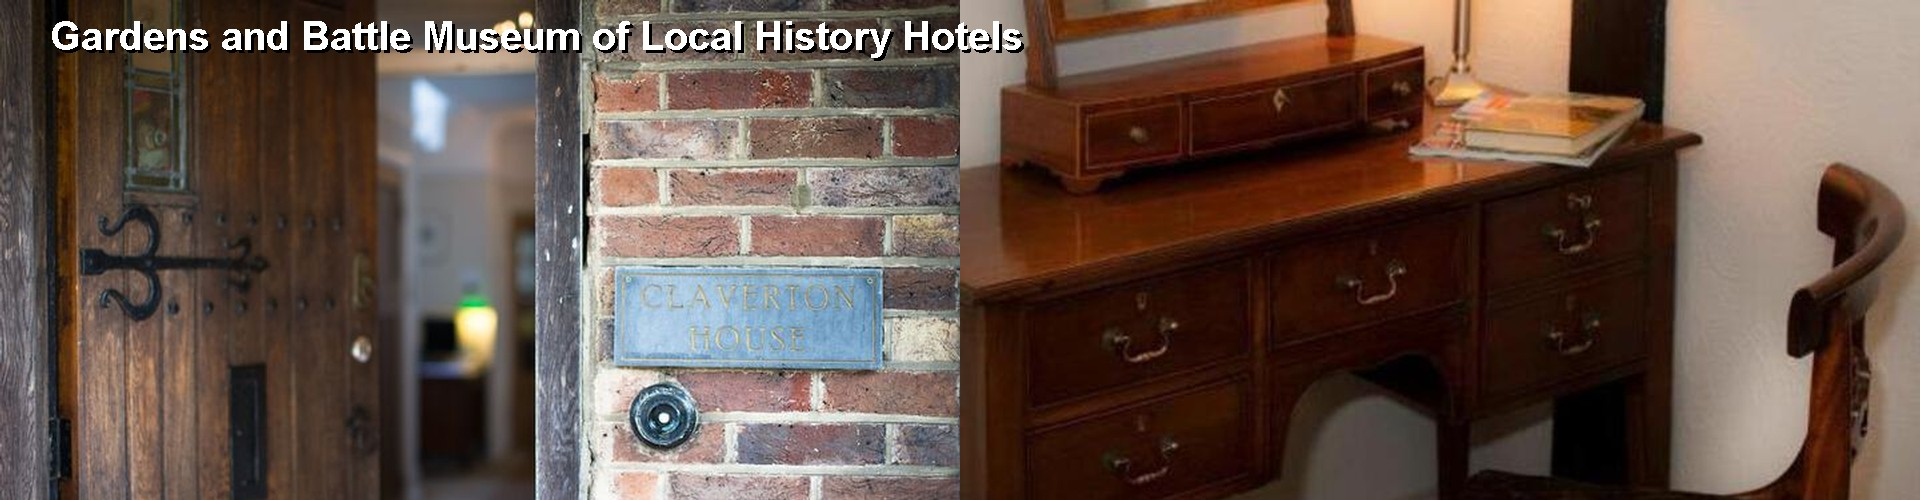 3 Best Hotels near Gardens and Battle Museum of Local History